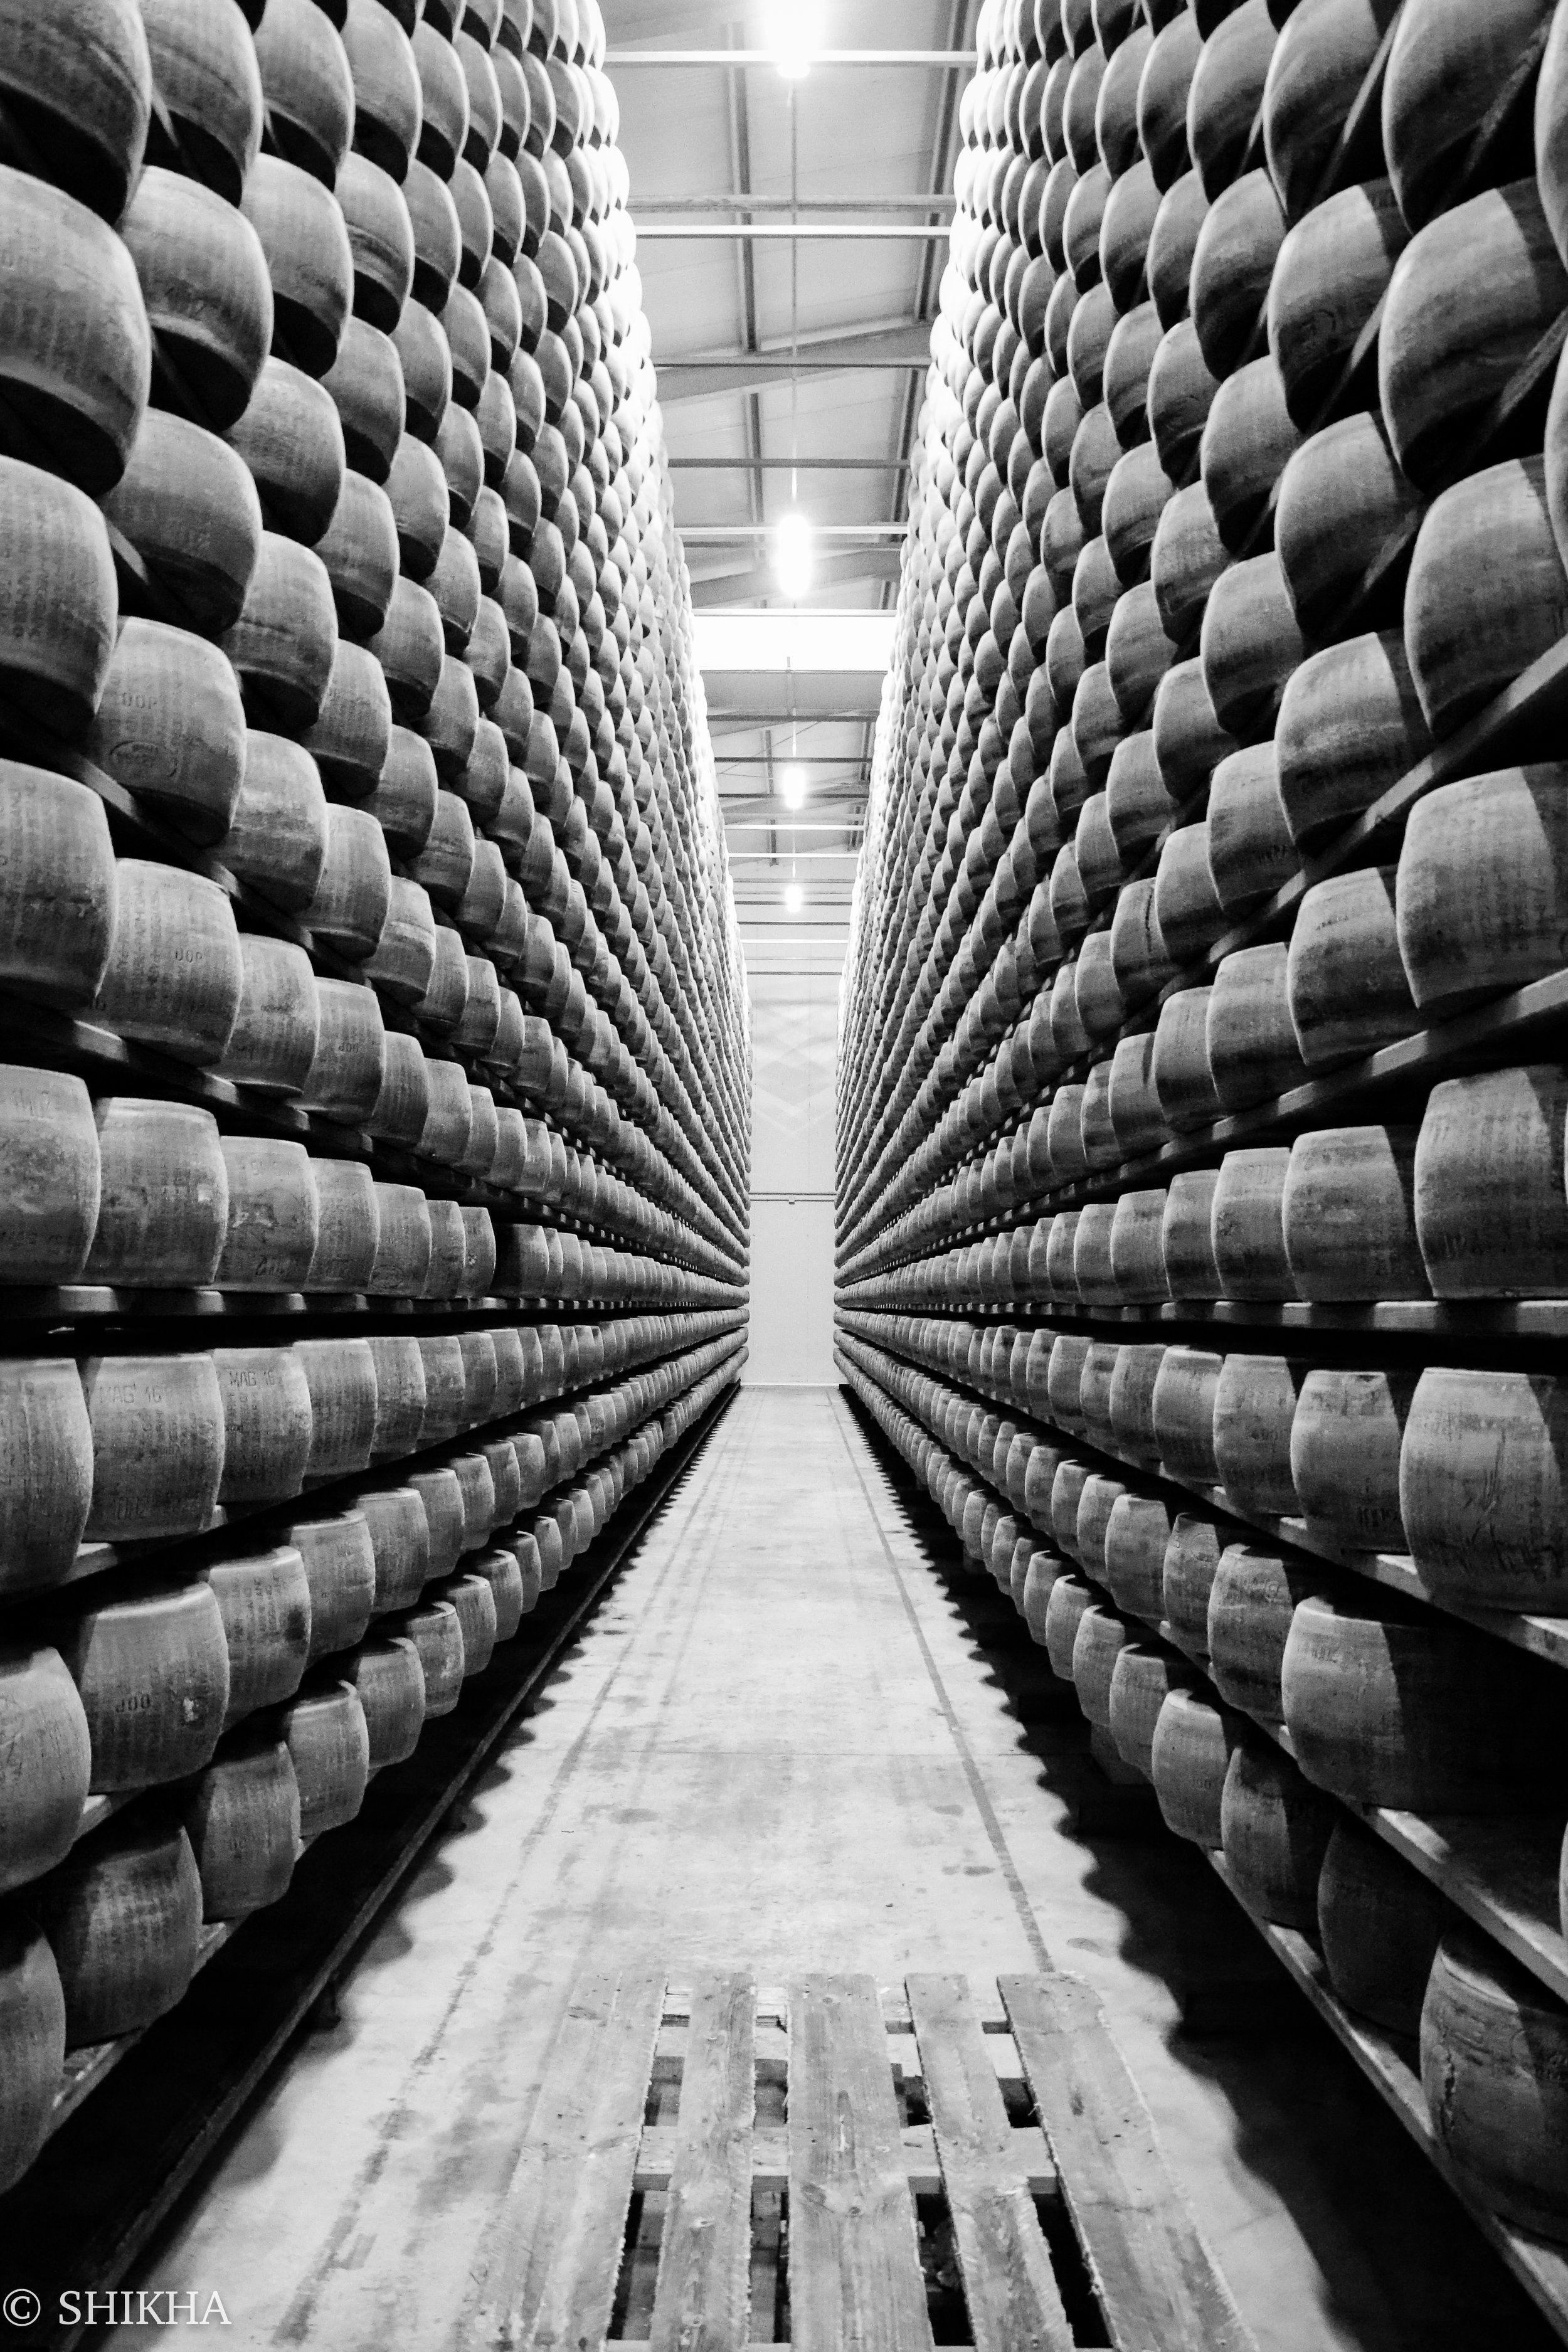 Parmigiano aging to perfection